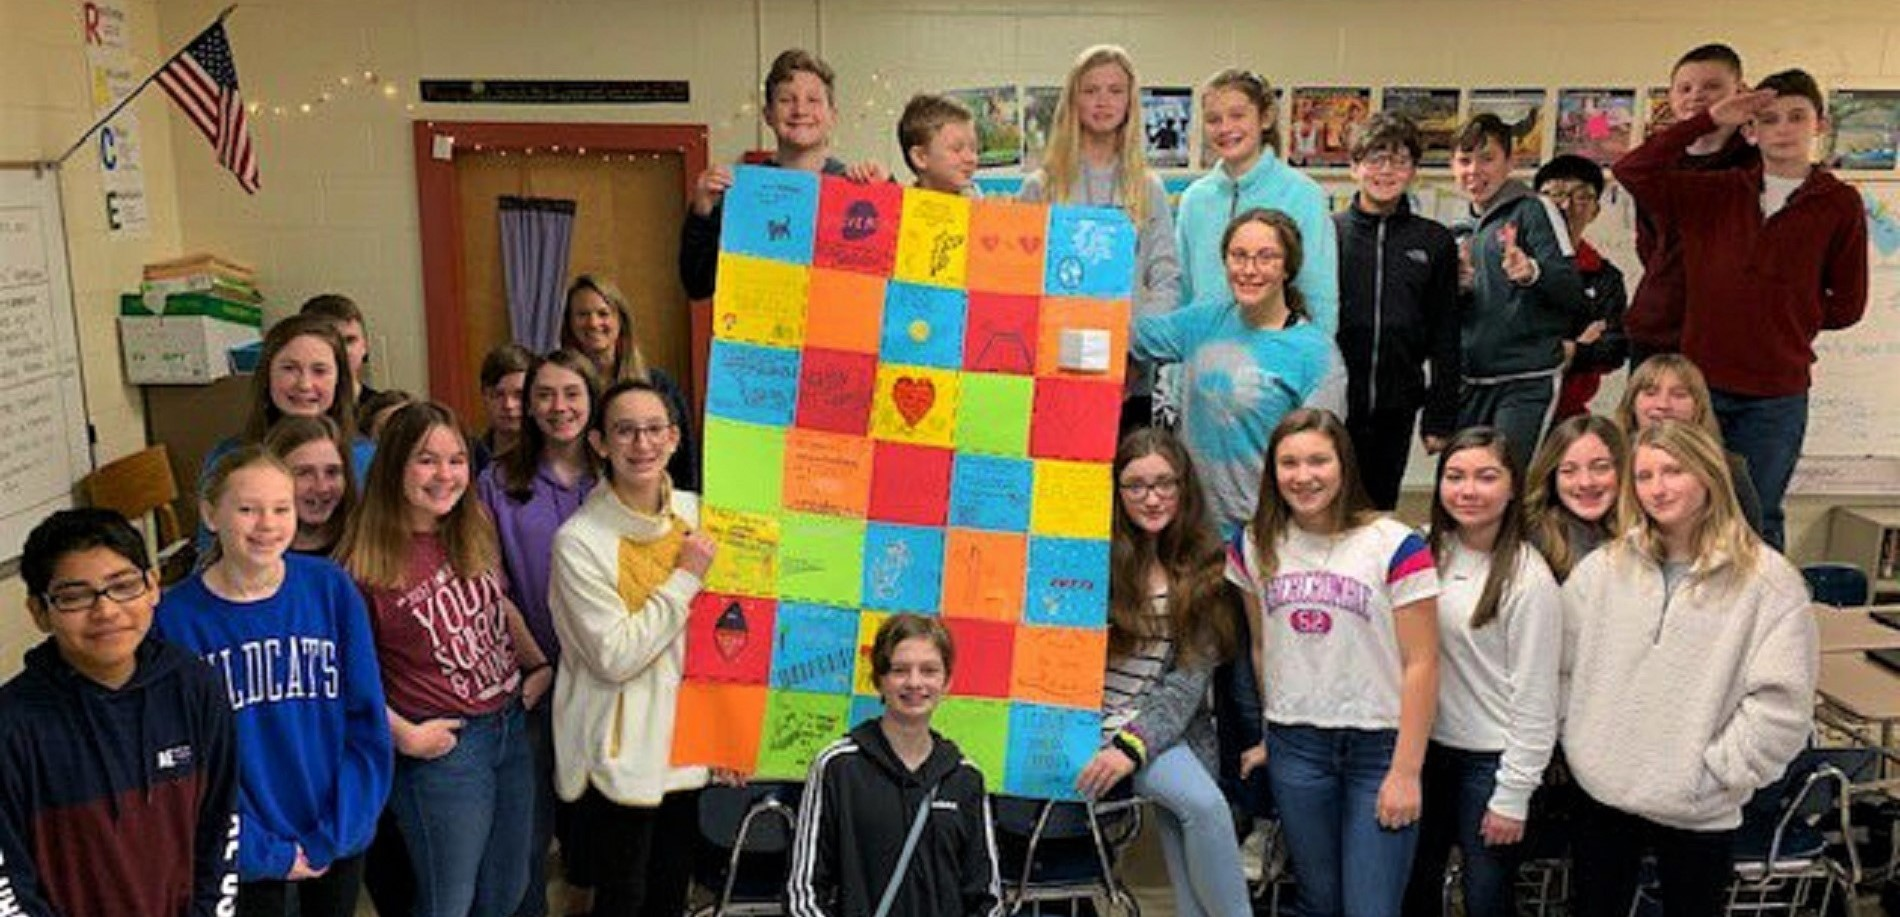 Mrs. Tabor's Language Arts class at East Hardin Middle School has been reading Moon Over Manifest and they created a Victory Quilt ... just like in the book!